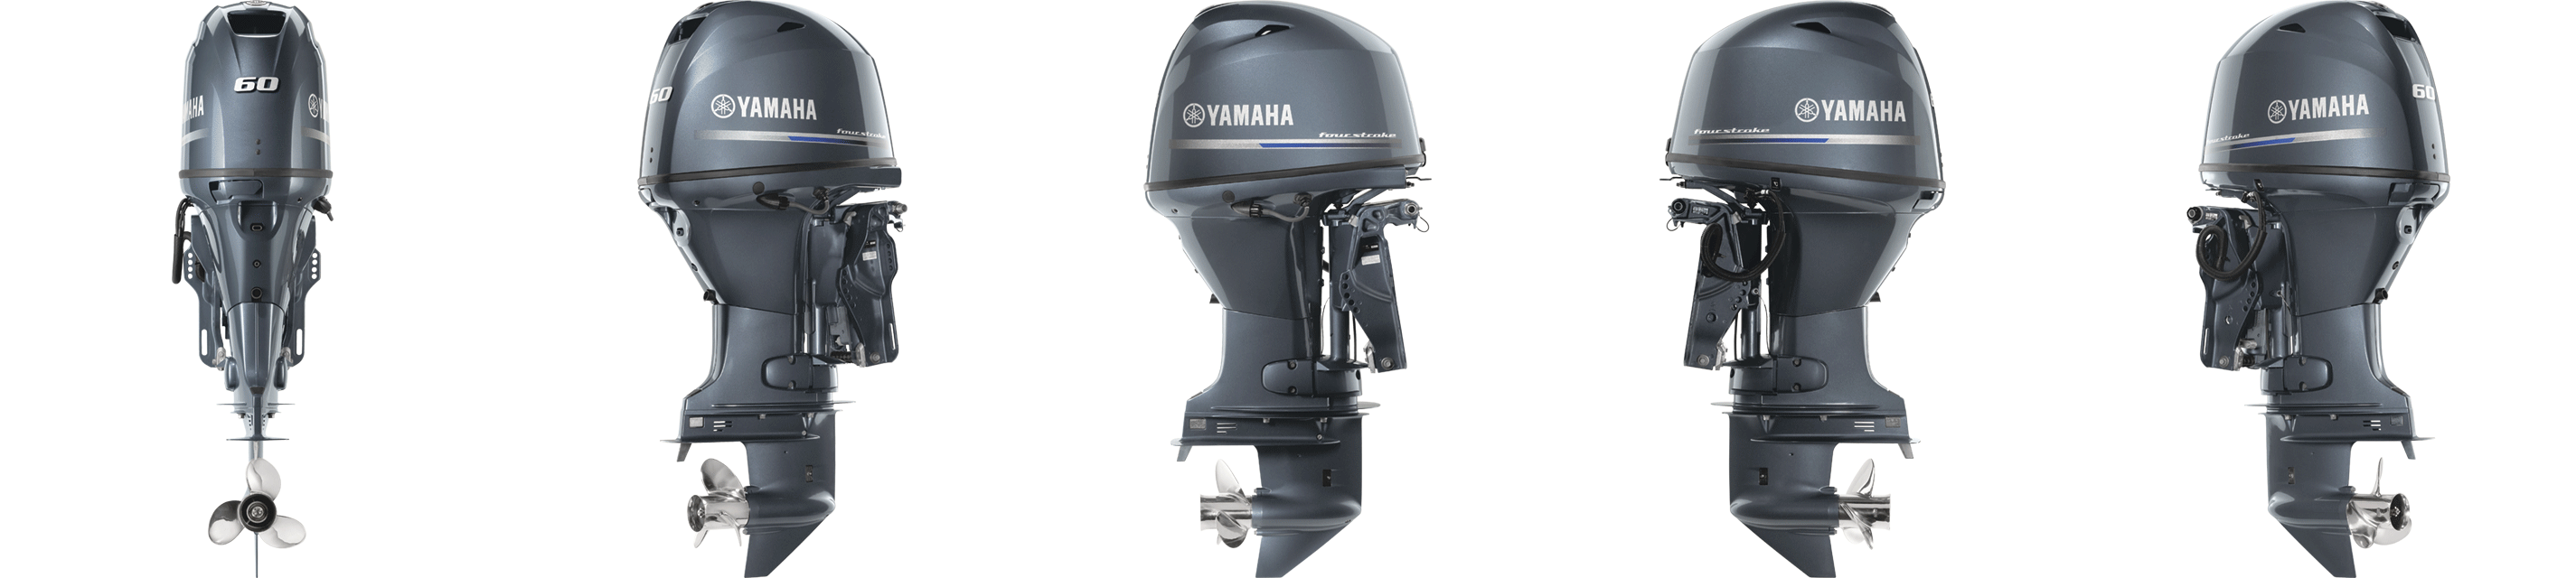 Outboards 70 to 50 hp 1l midrange yamaha outboards for Best prop for 25 hp yamaha 2 stroke